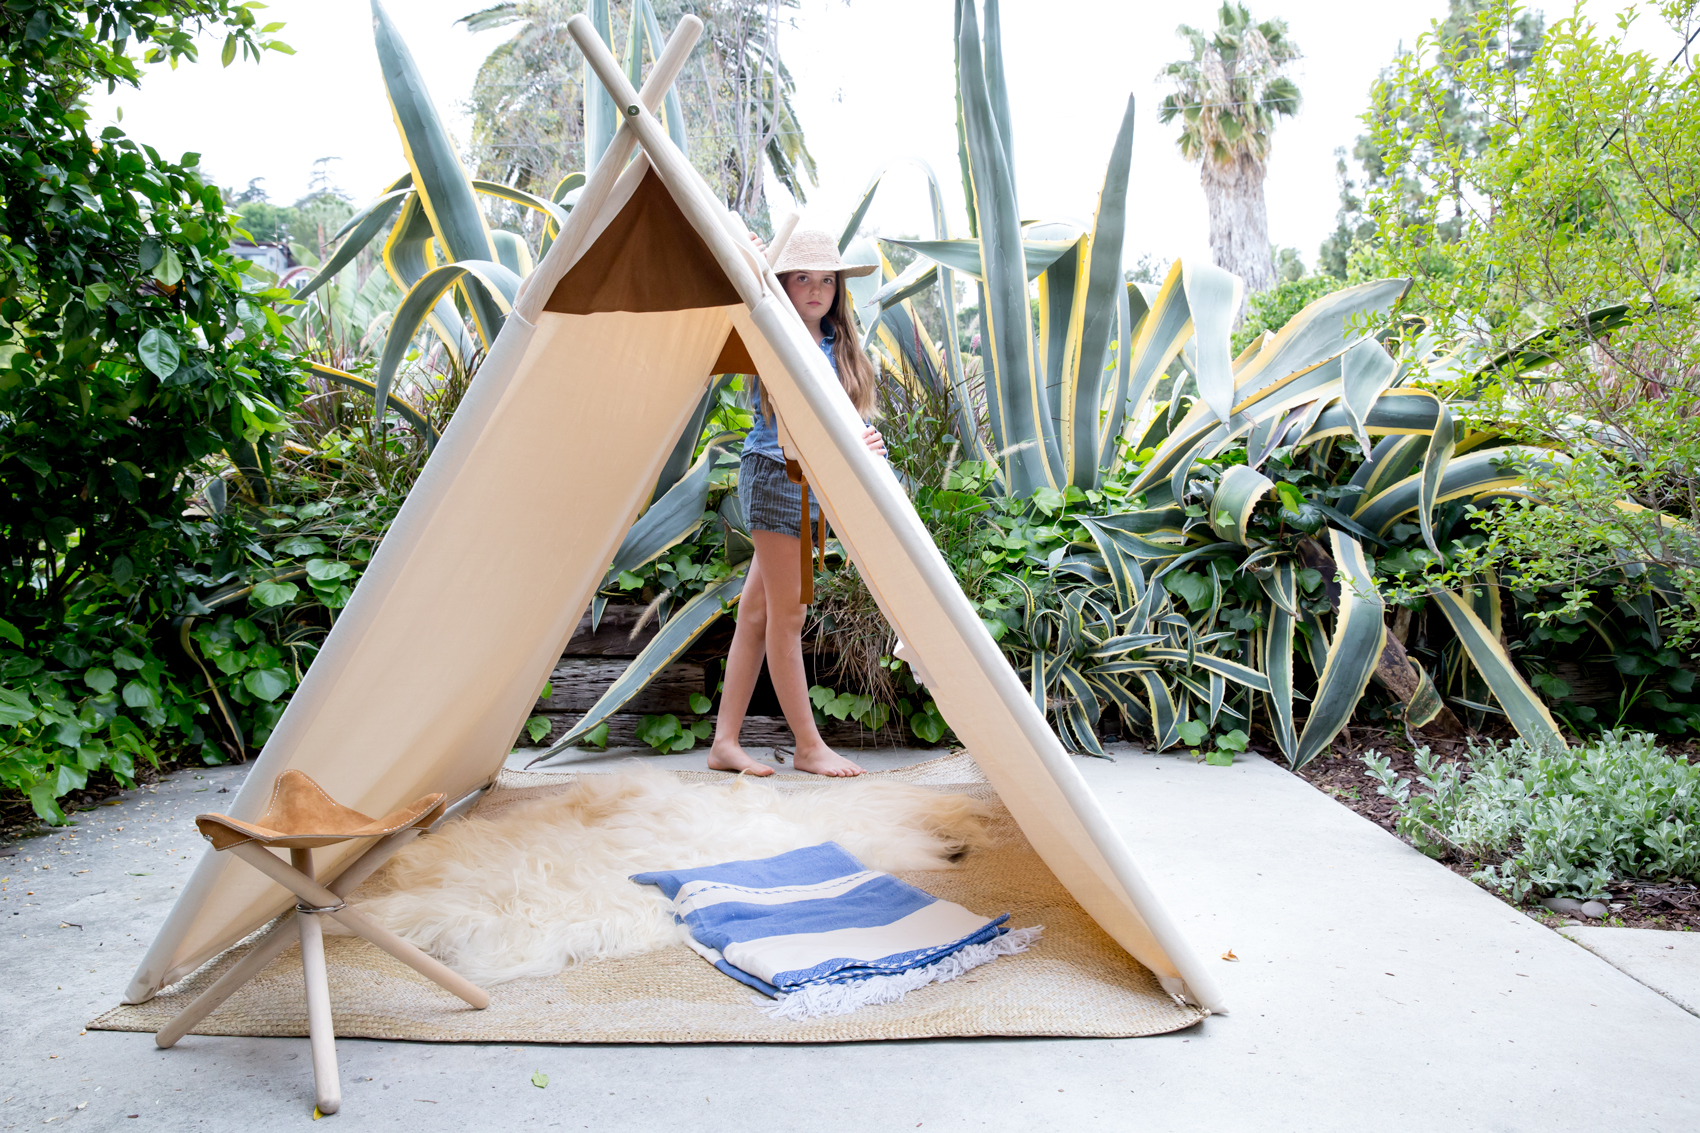 Field tent natural canvas teepee and backcountry stool with girl